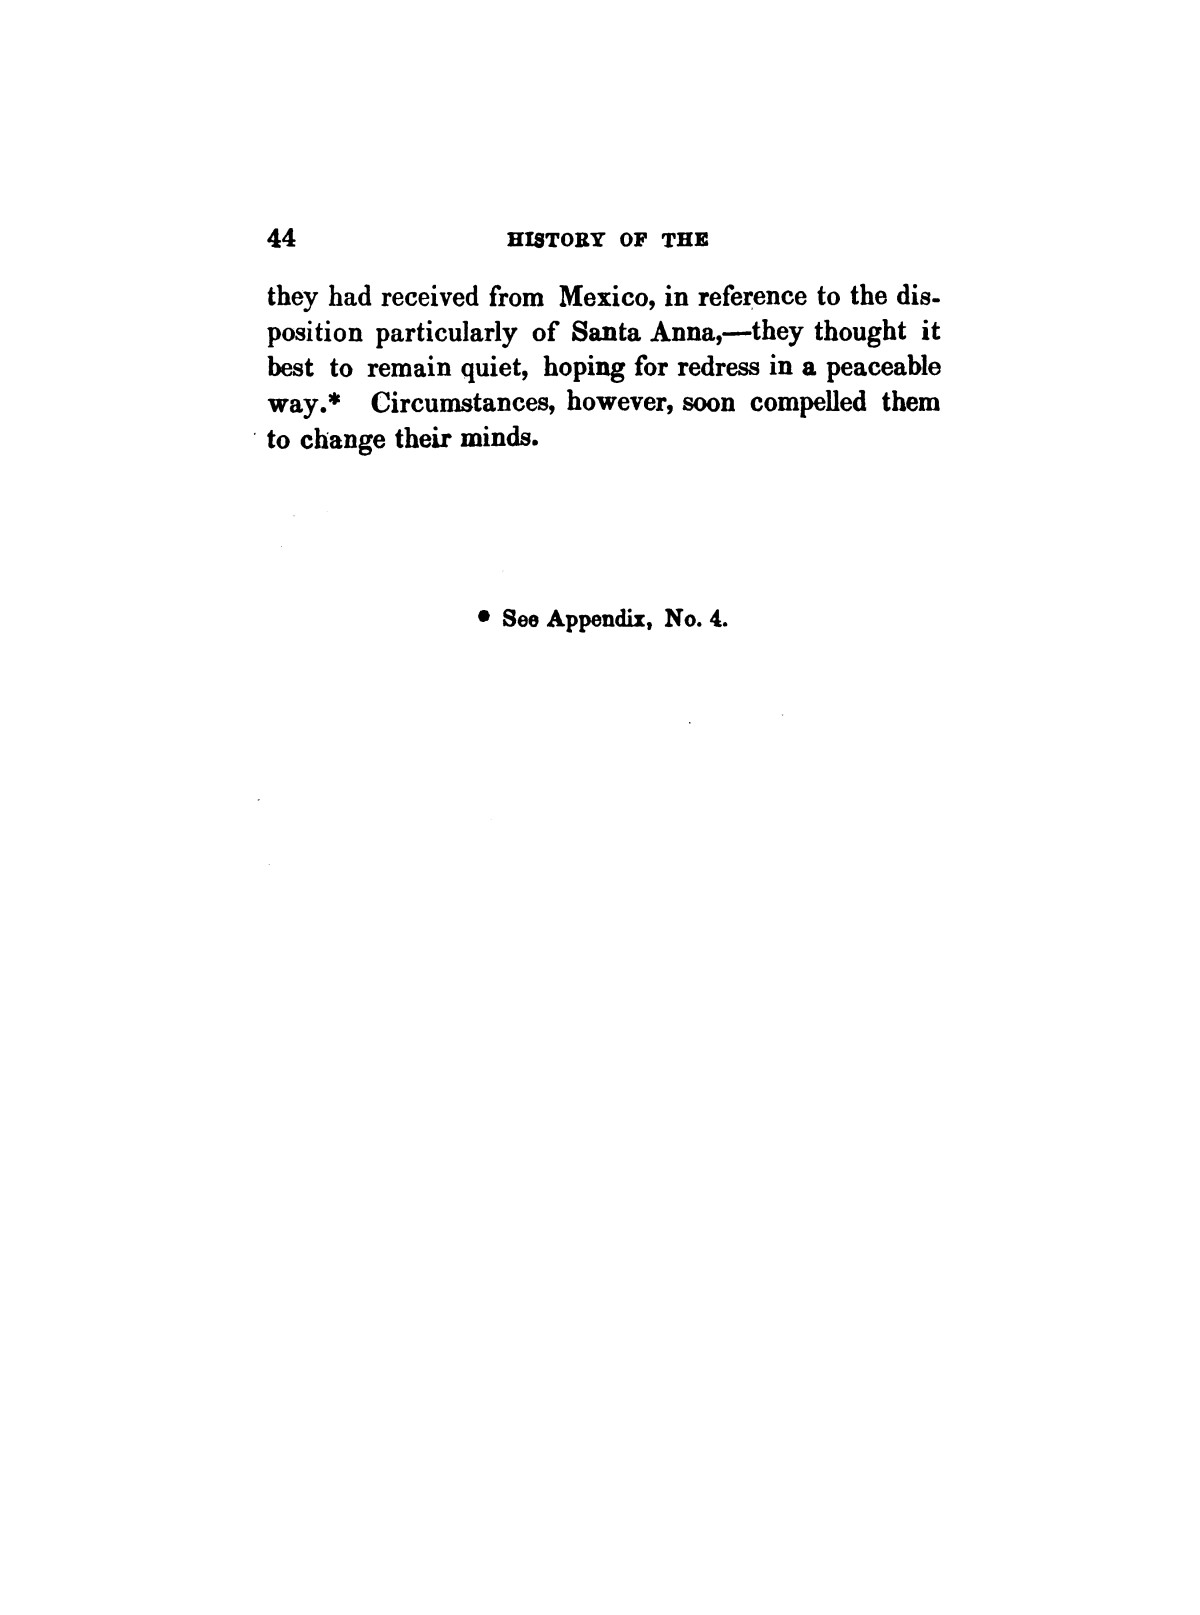 History of the revolution in Texas, particularly of the war of 1835 & '36; together with the latest geographical, topographical, and statistical accounts of the country, from the most authentic sources. Also, an appendix. By the Rev. C. Newell.                                                                                                      [Sequence #]: 56 of 227